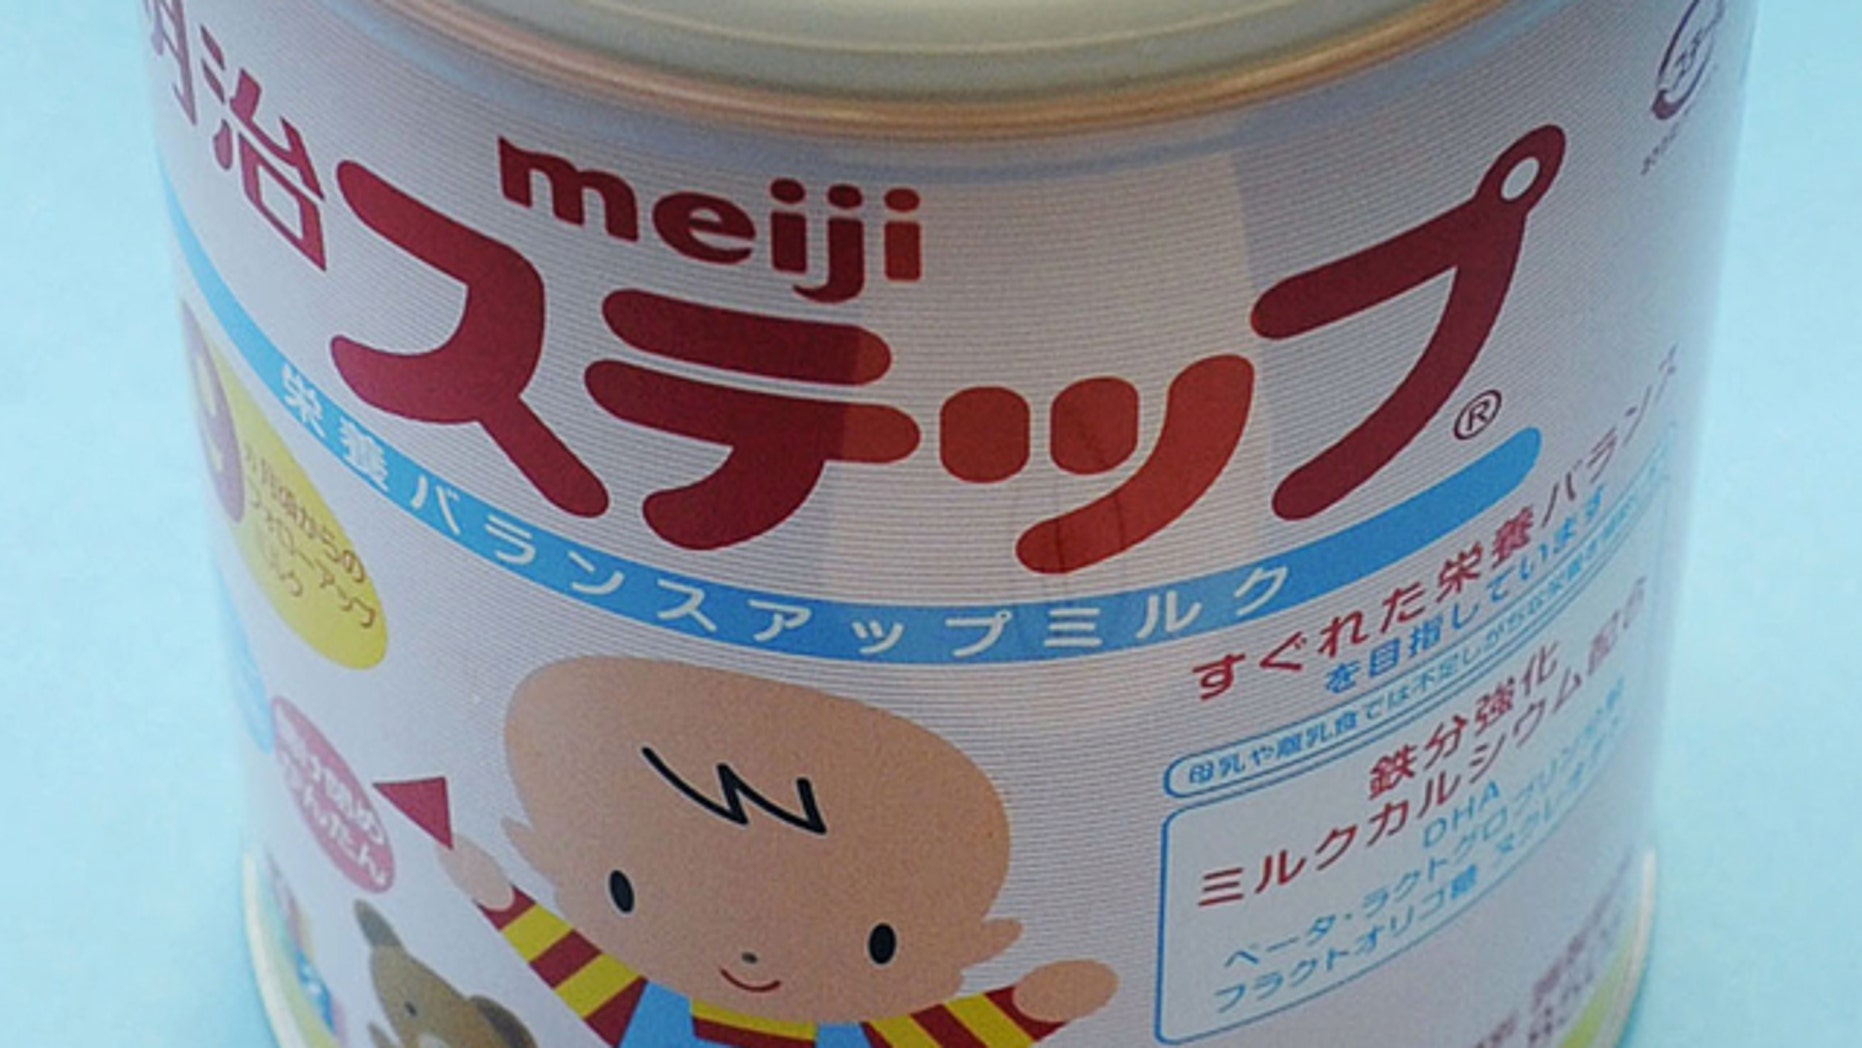 A canned powdered milk for infants Meiji Step, manufactured and sold by Japan's major food and candy maker Meiji Co.